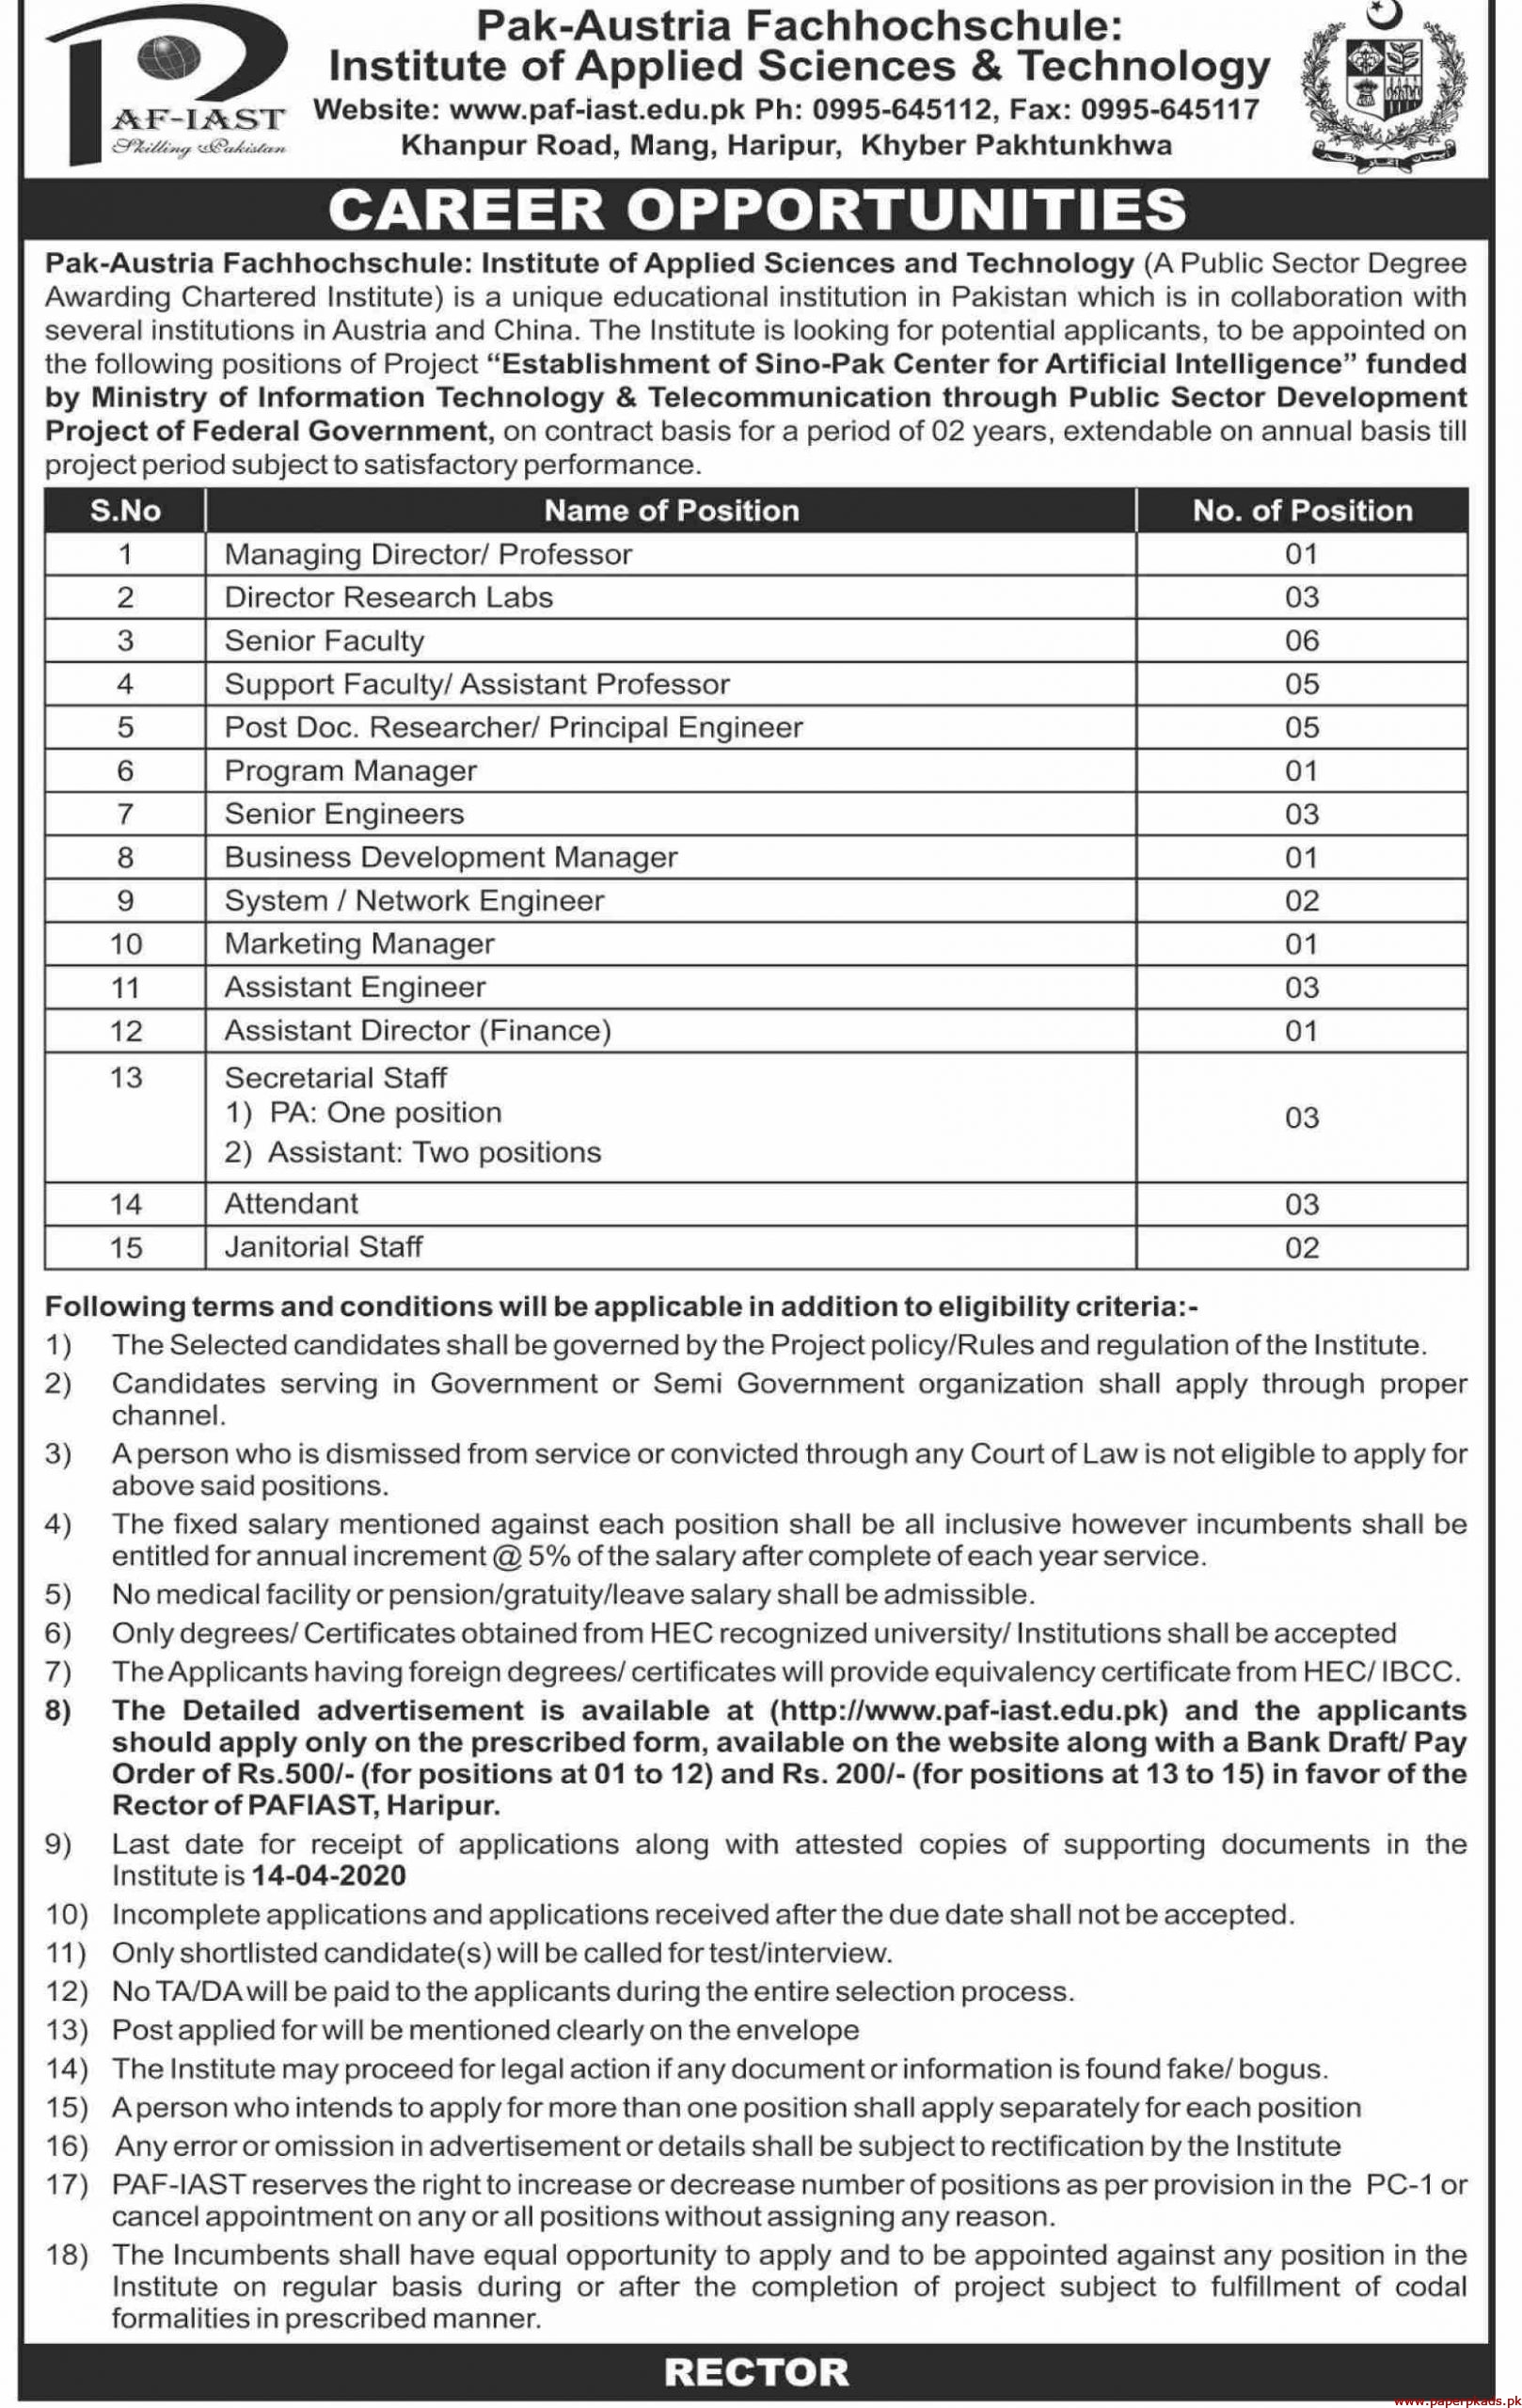 PAF Institute of Applied Sciences & Technology Jobs 2020 Latest